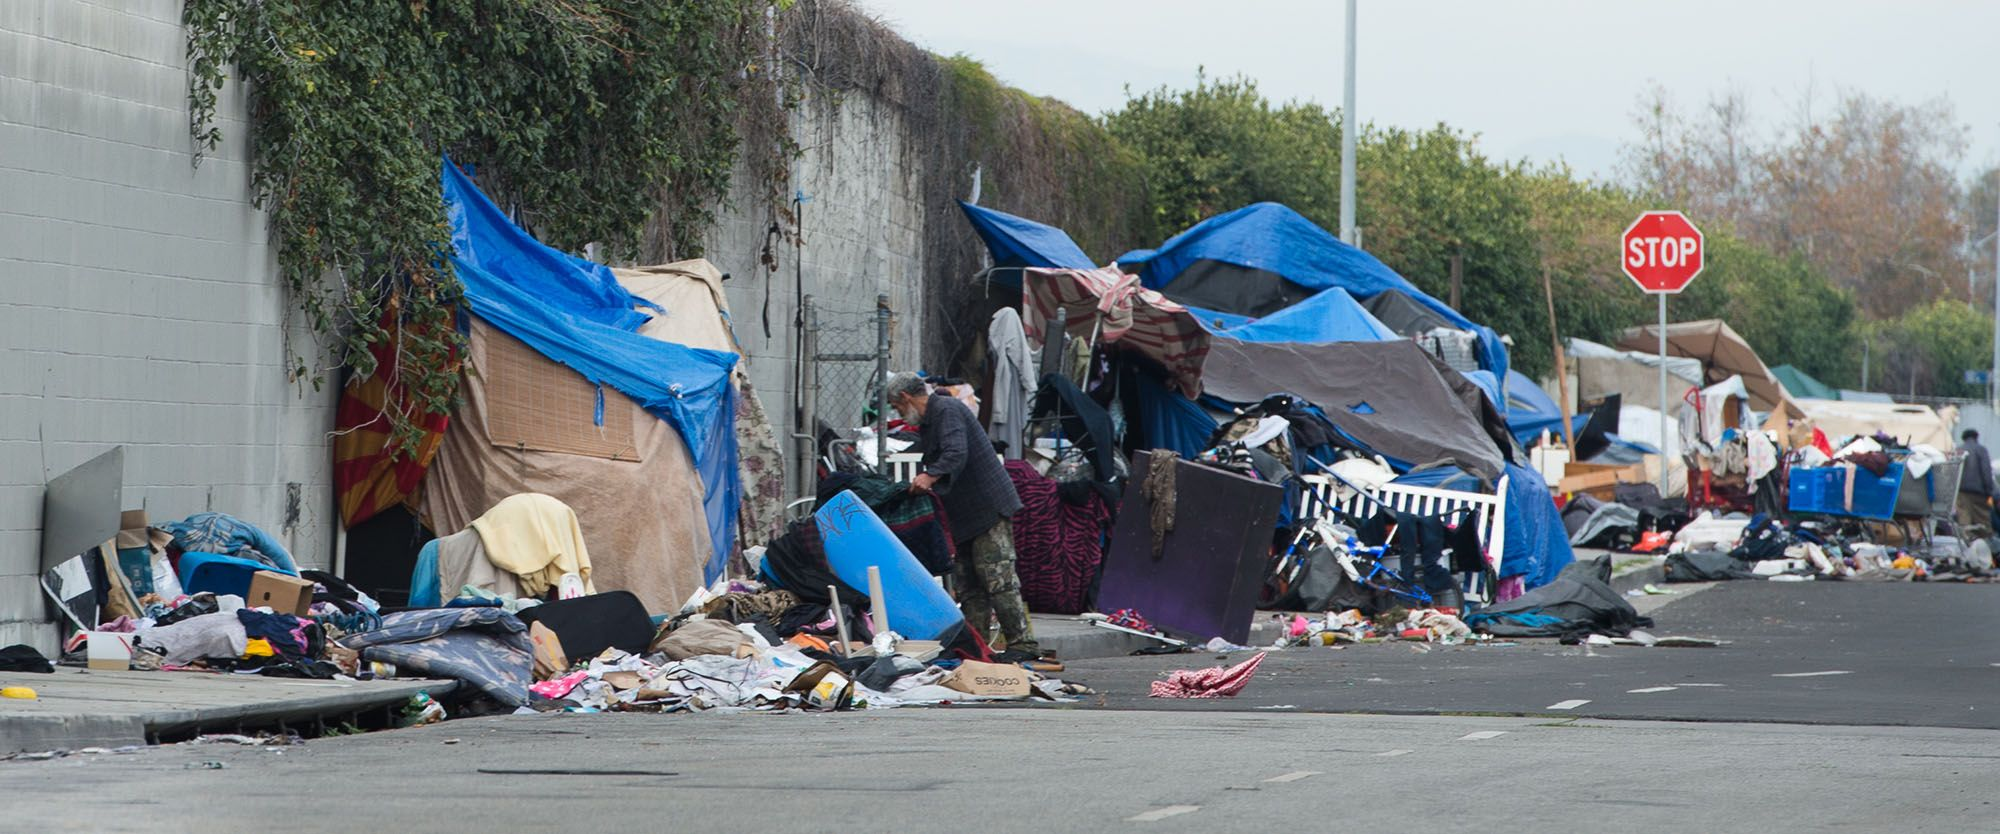 Report Homelessness In Los Angeles Has Surged By 75 Percent In Six Years Blunt Force Truth Homeless Los Angeles Help Homeless People